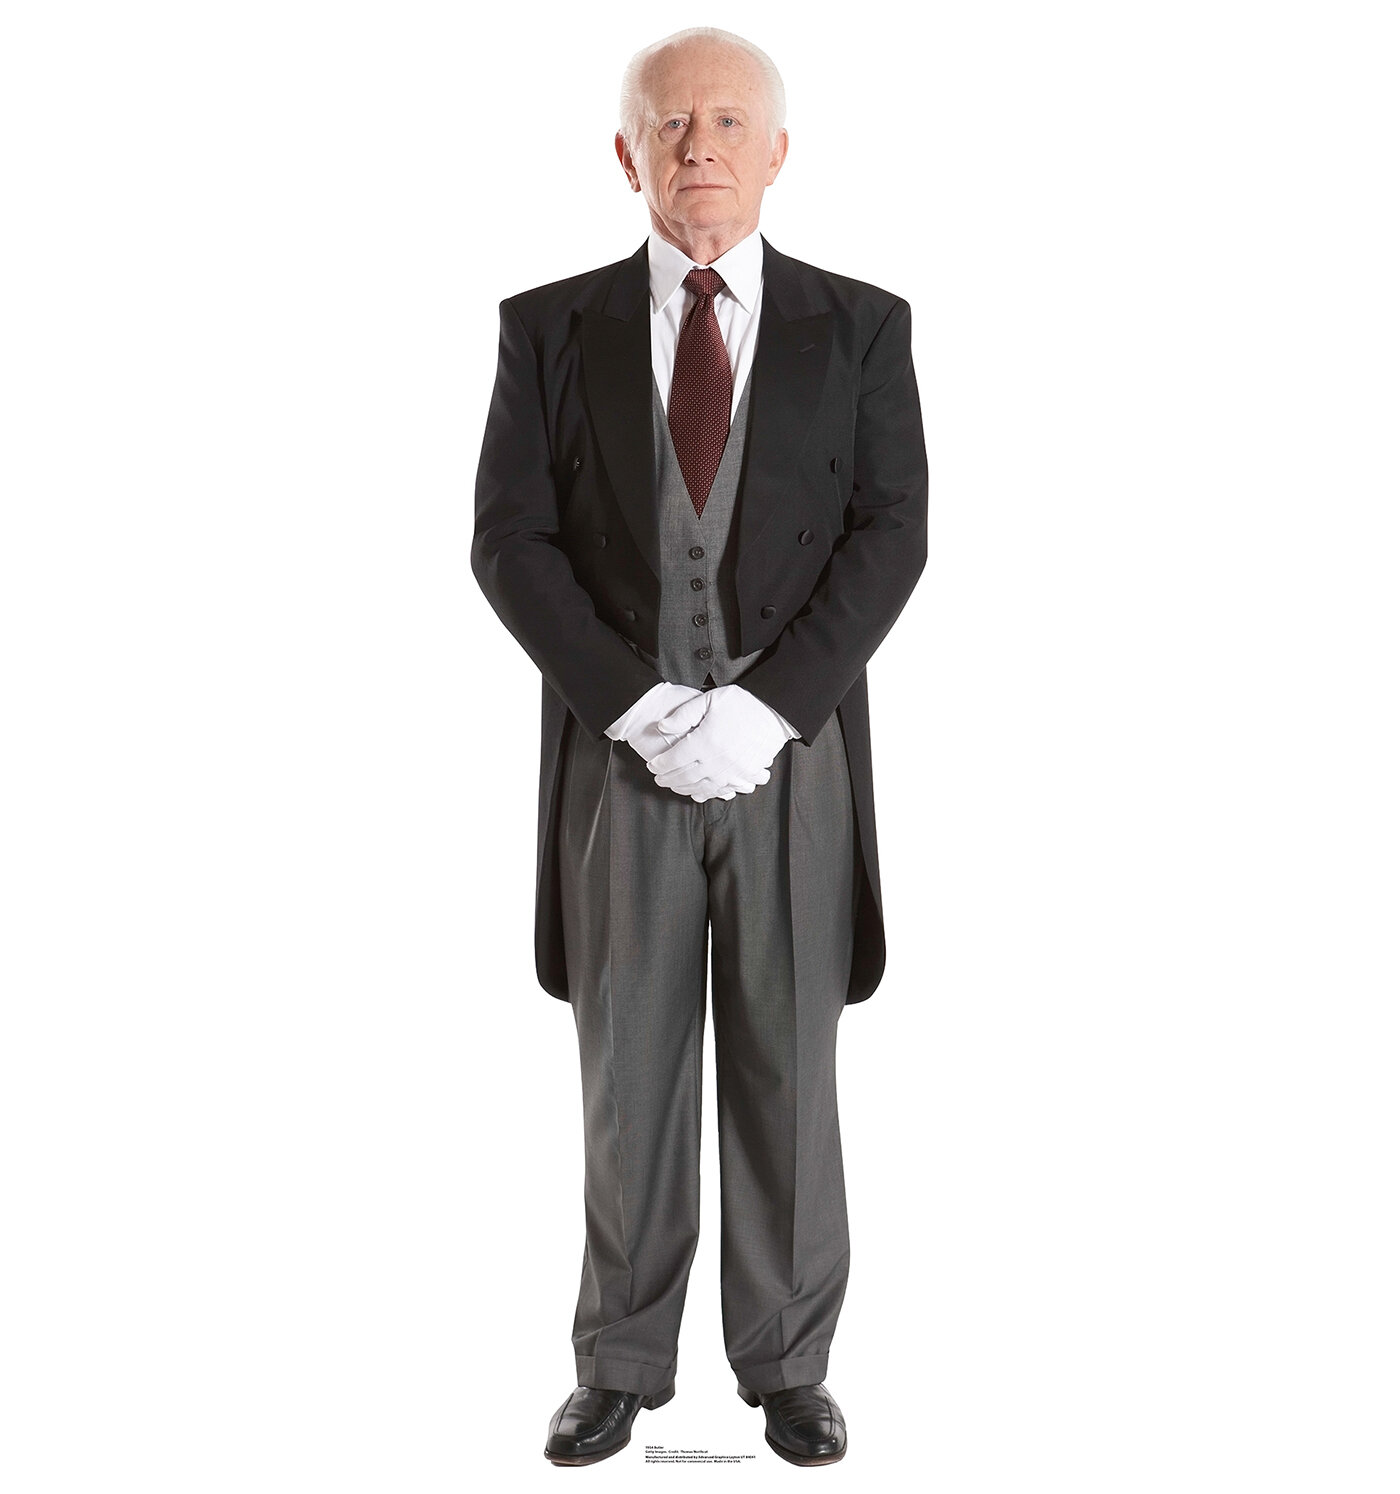 SECRET AGENT Spy STAND-IN CARDBOARD CUTOUT Standup Standee Standin FREE SHIPPING